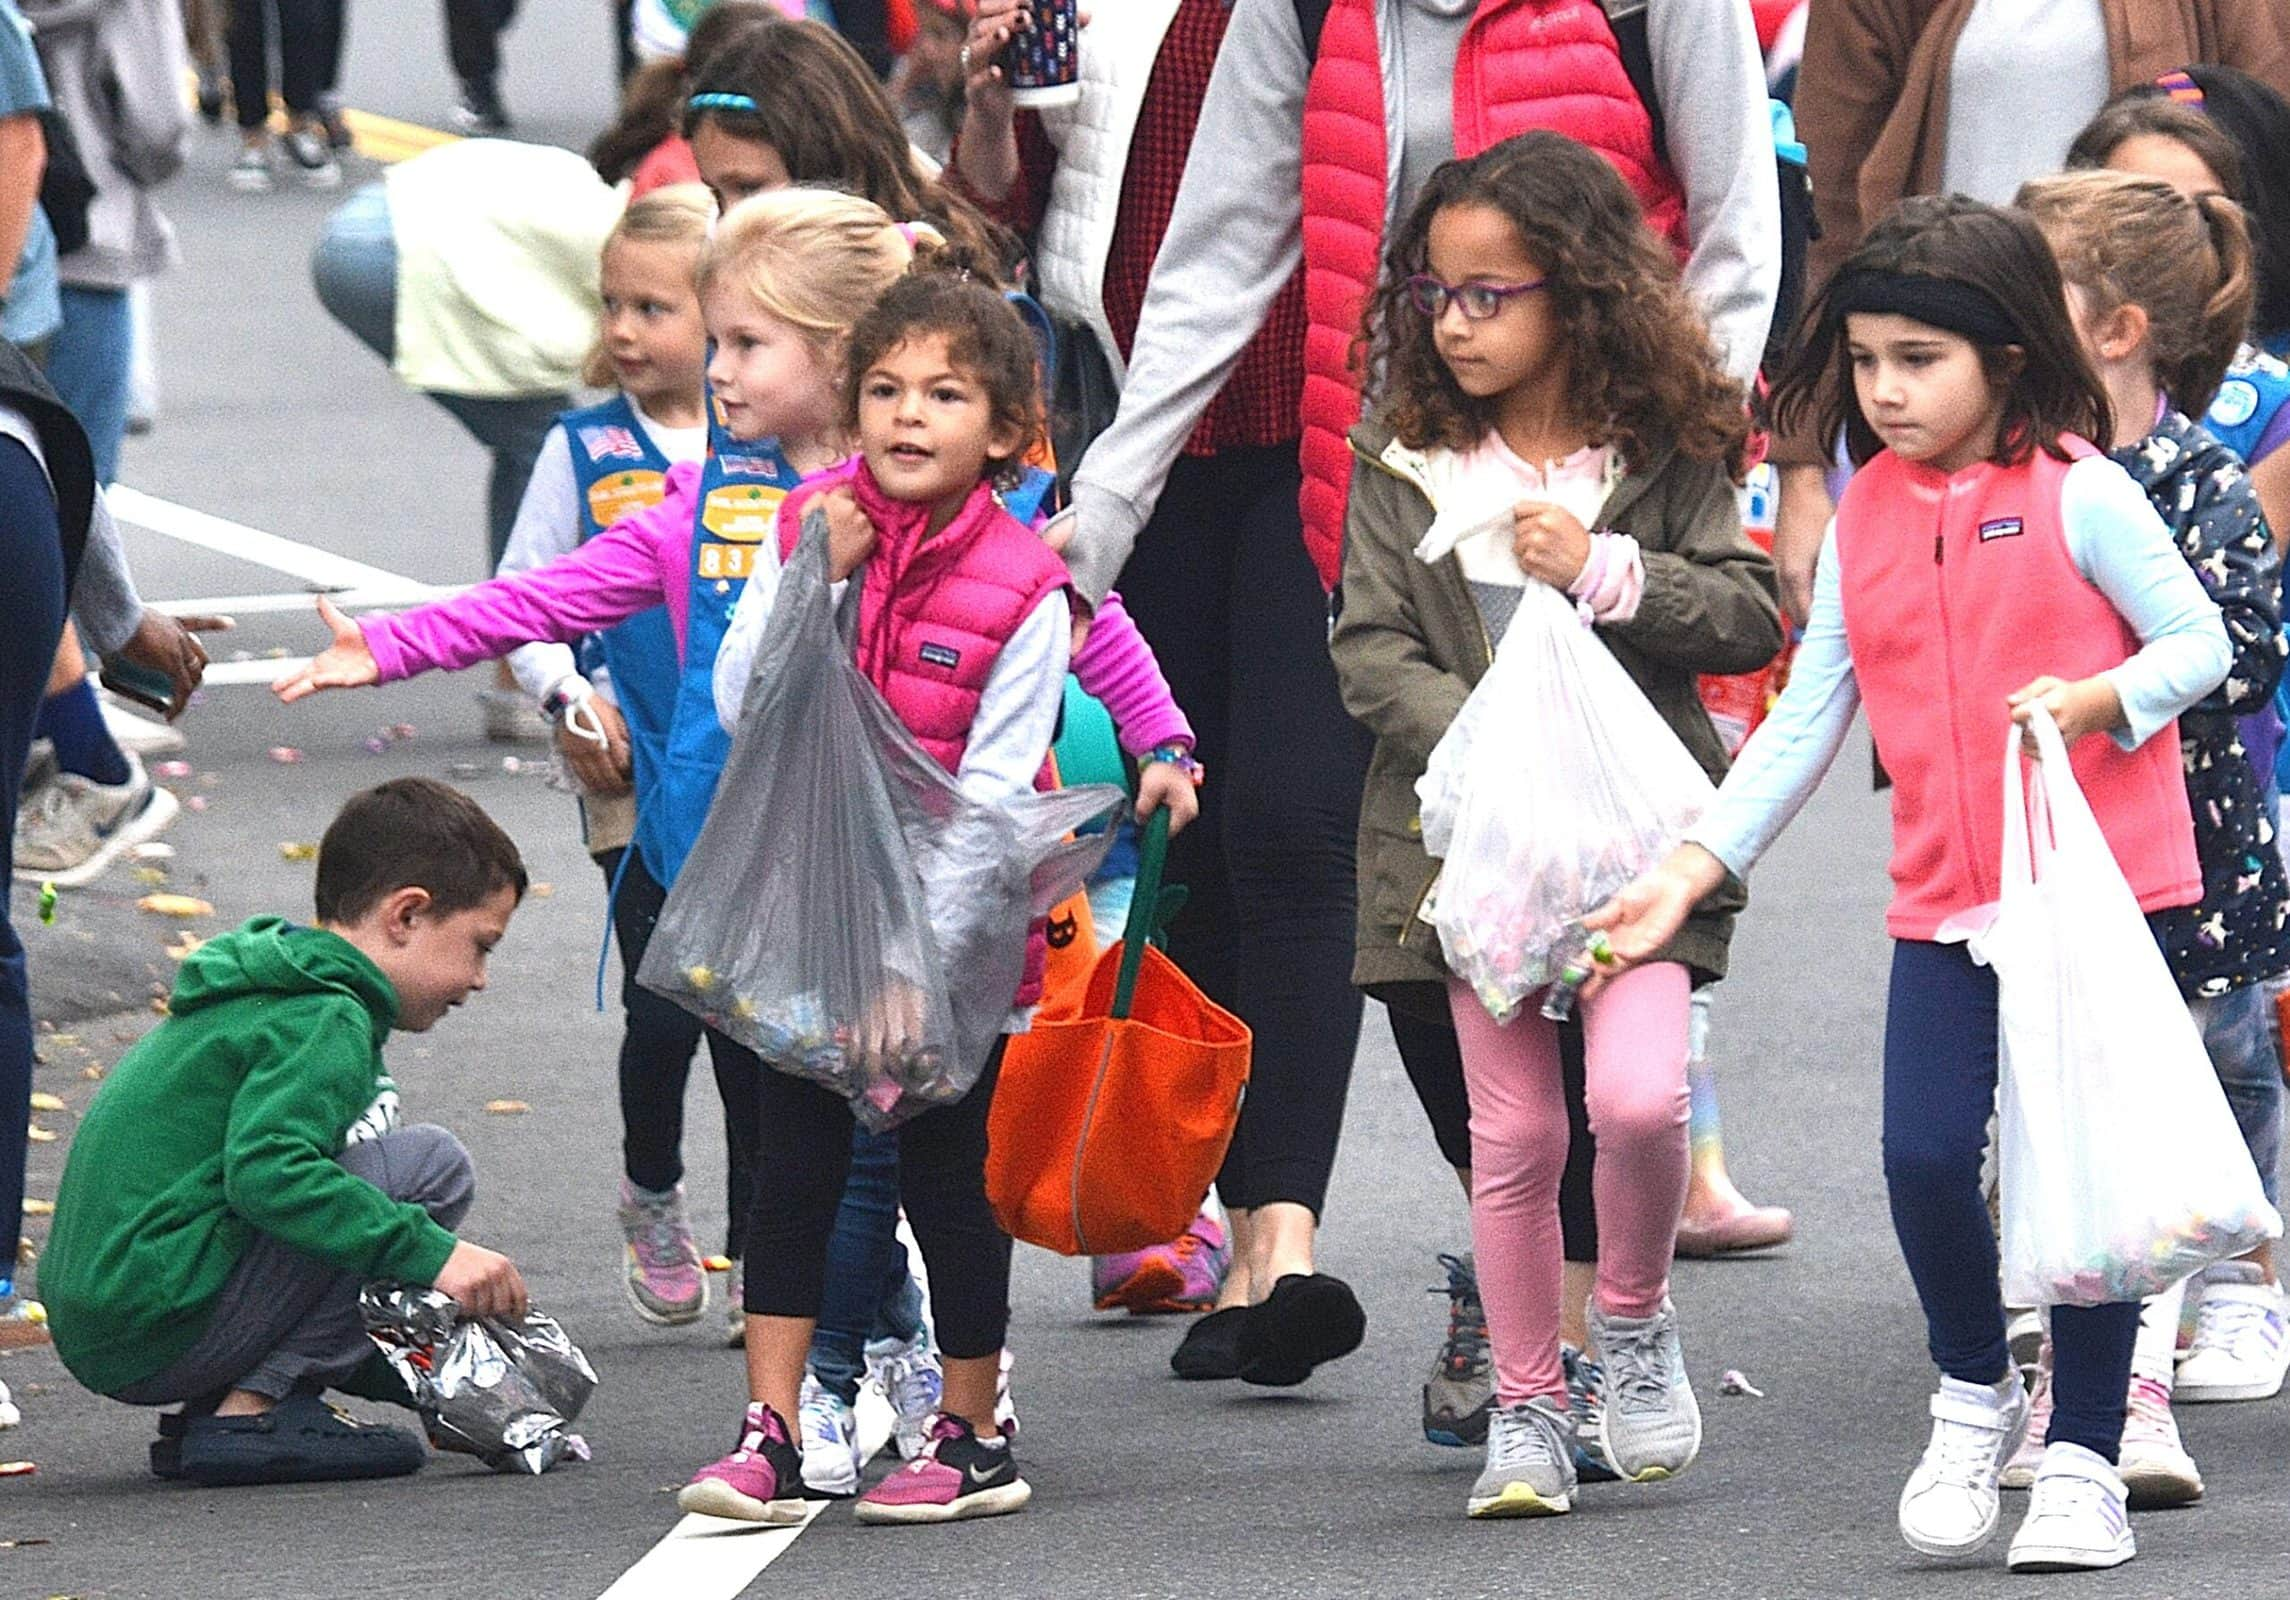 Members of Girl Scout Daisy troops toss candy to parade spectators on the sidelines.